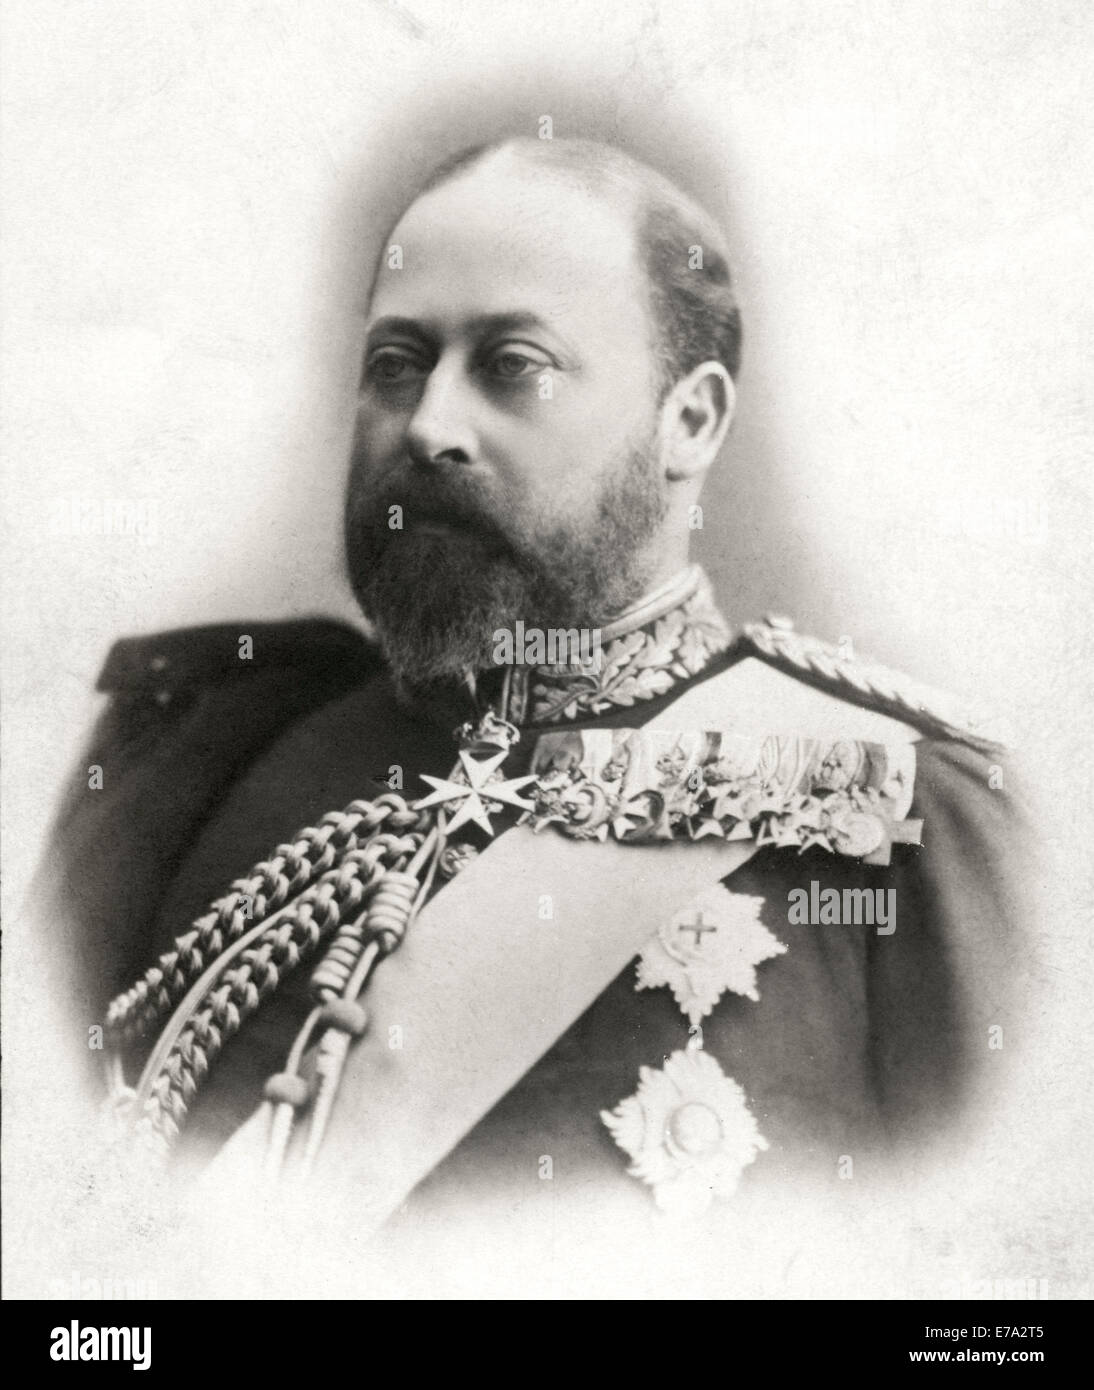 Edward VII (1841-1910) King of England 1901-10, Portrait as Prince of Wales, circa 1890 - Stock Image